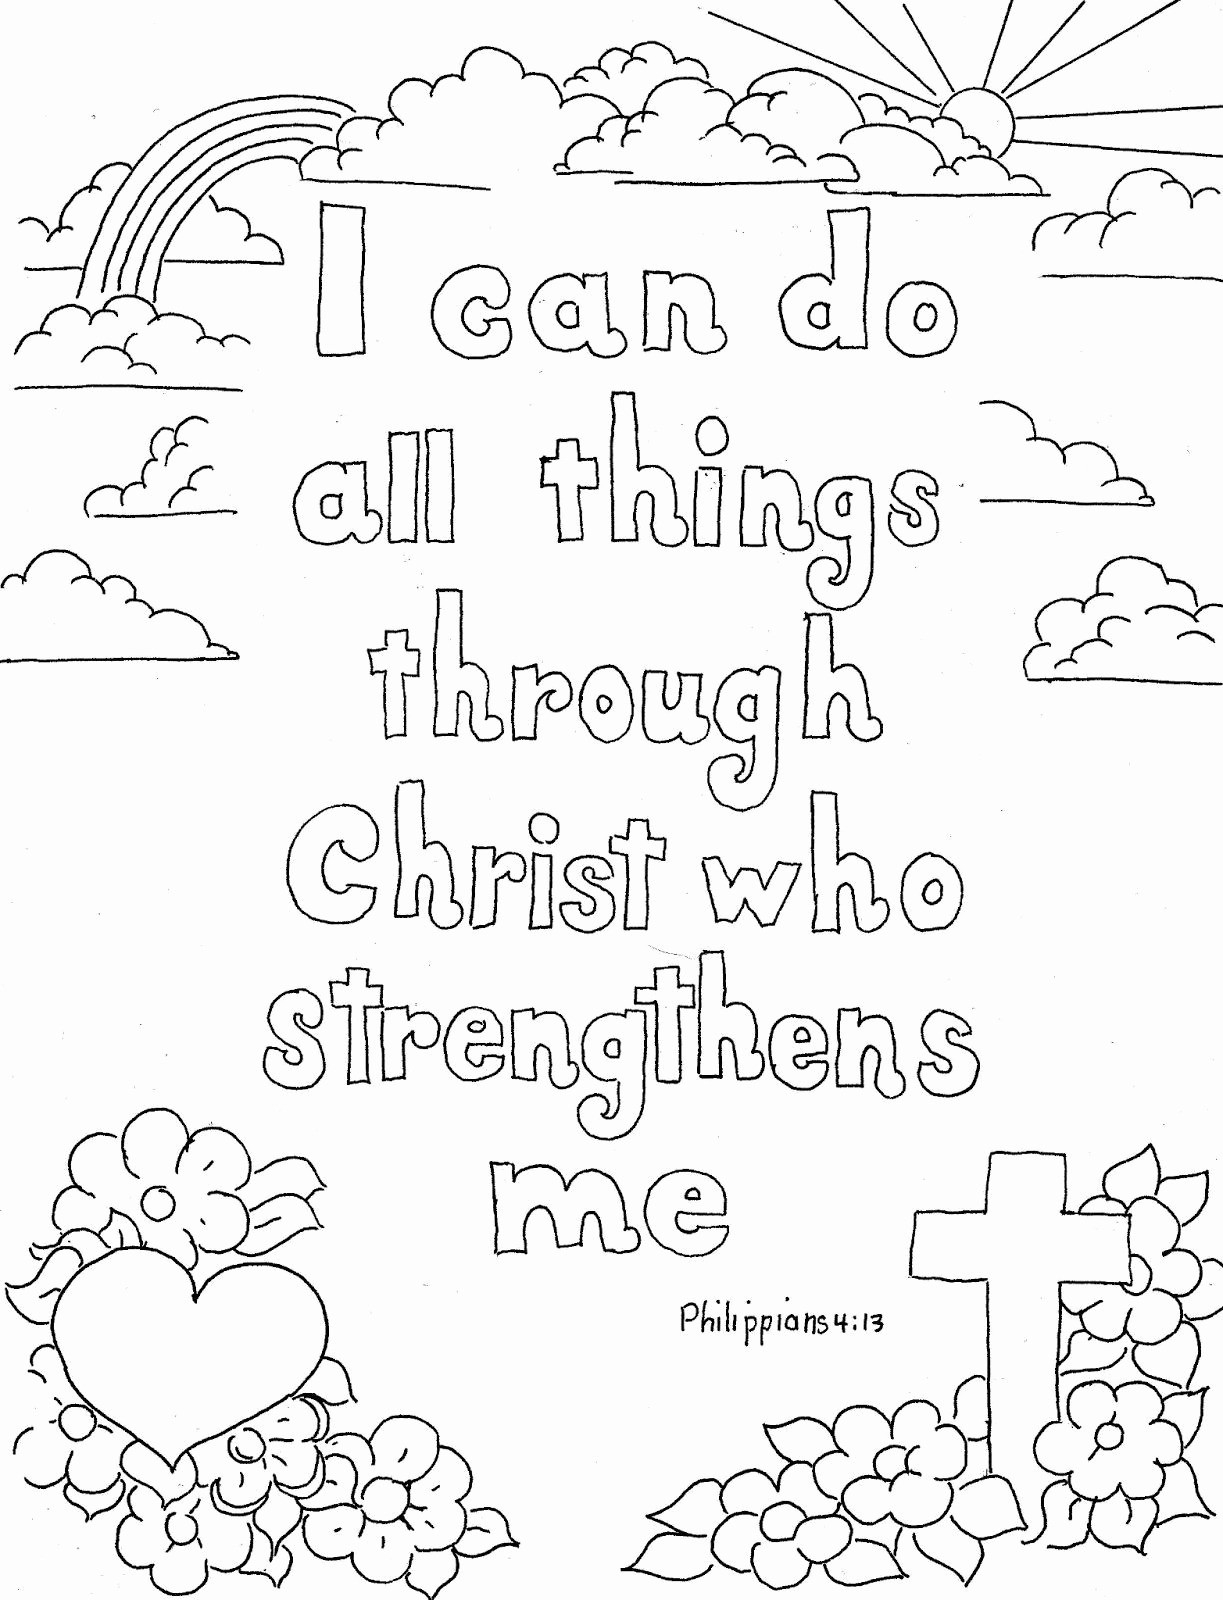 All About Me Coloring Pages  to Print 16b - Save it to your computer